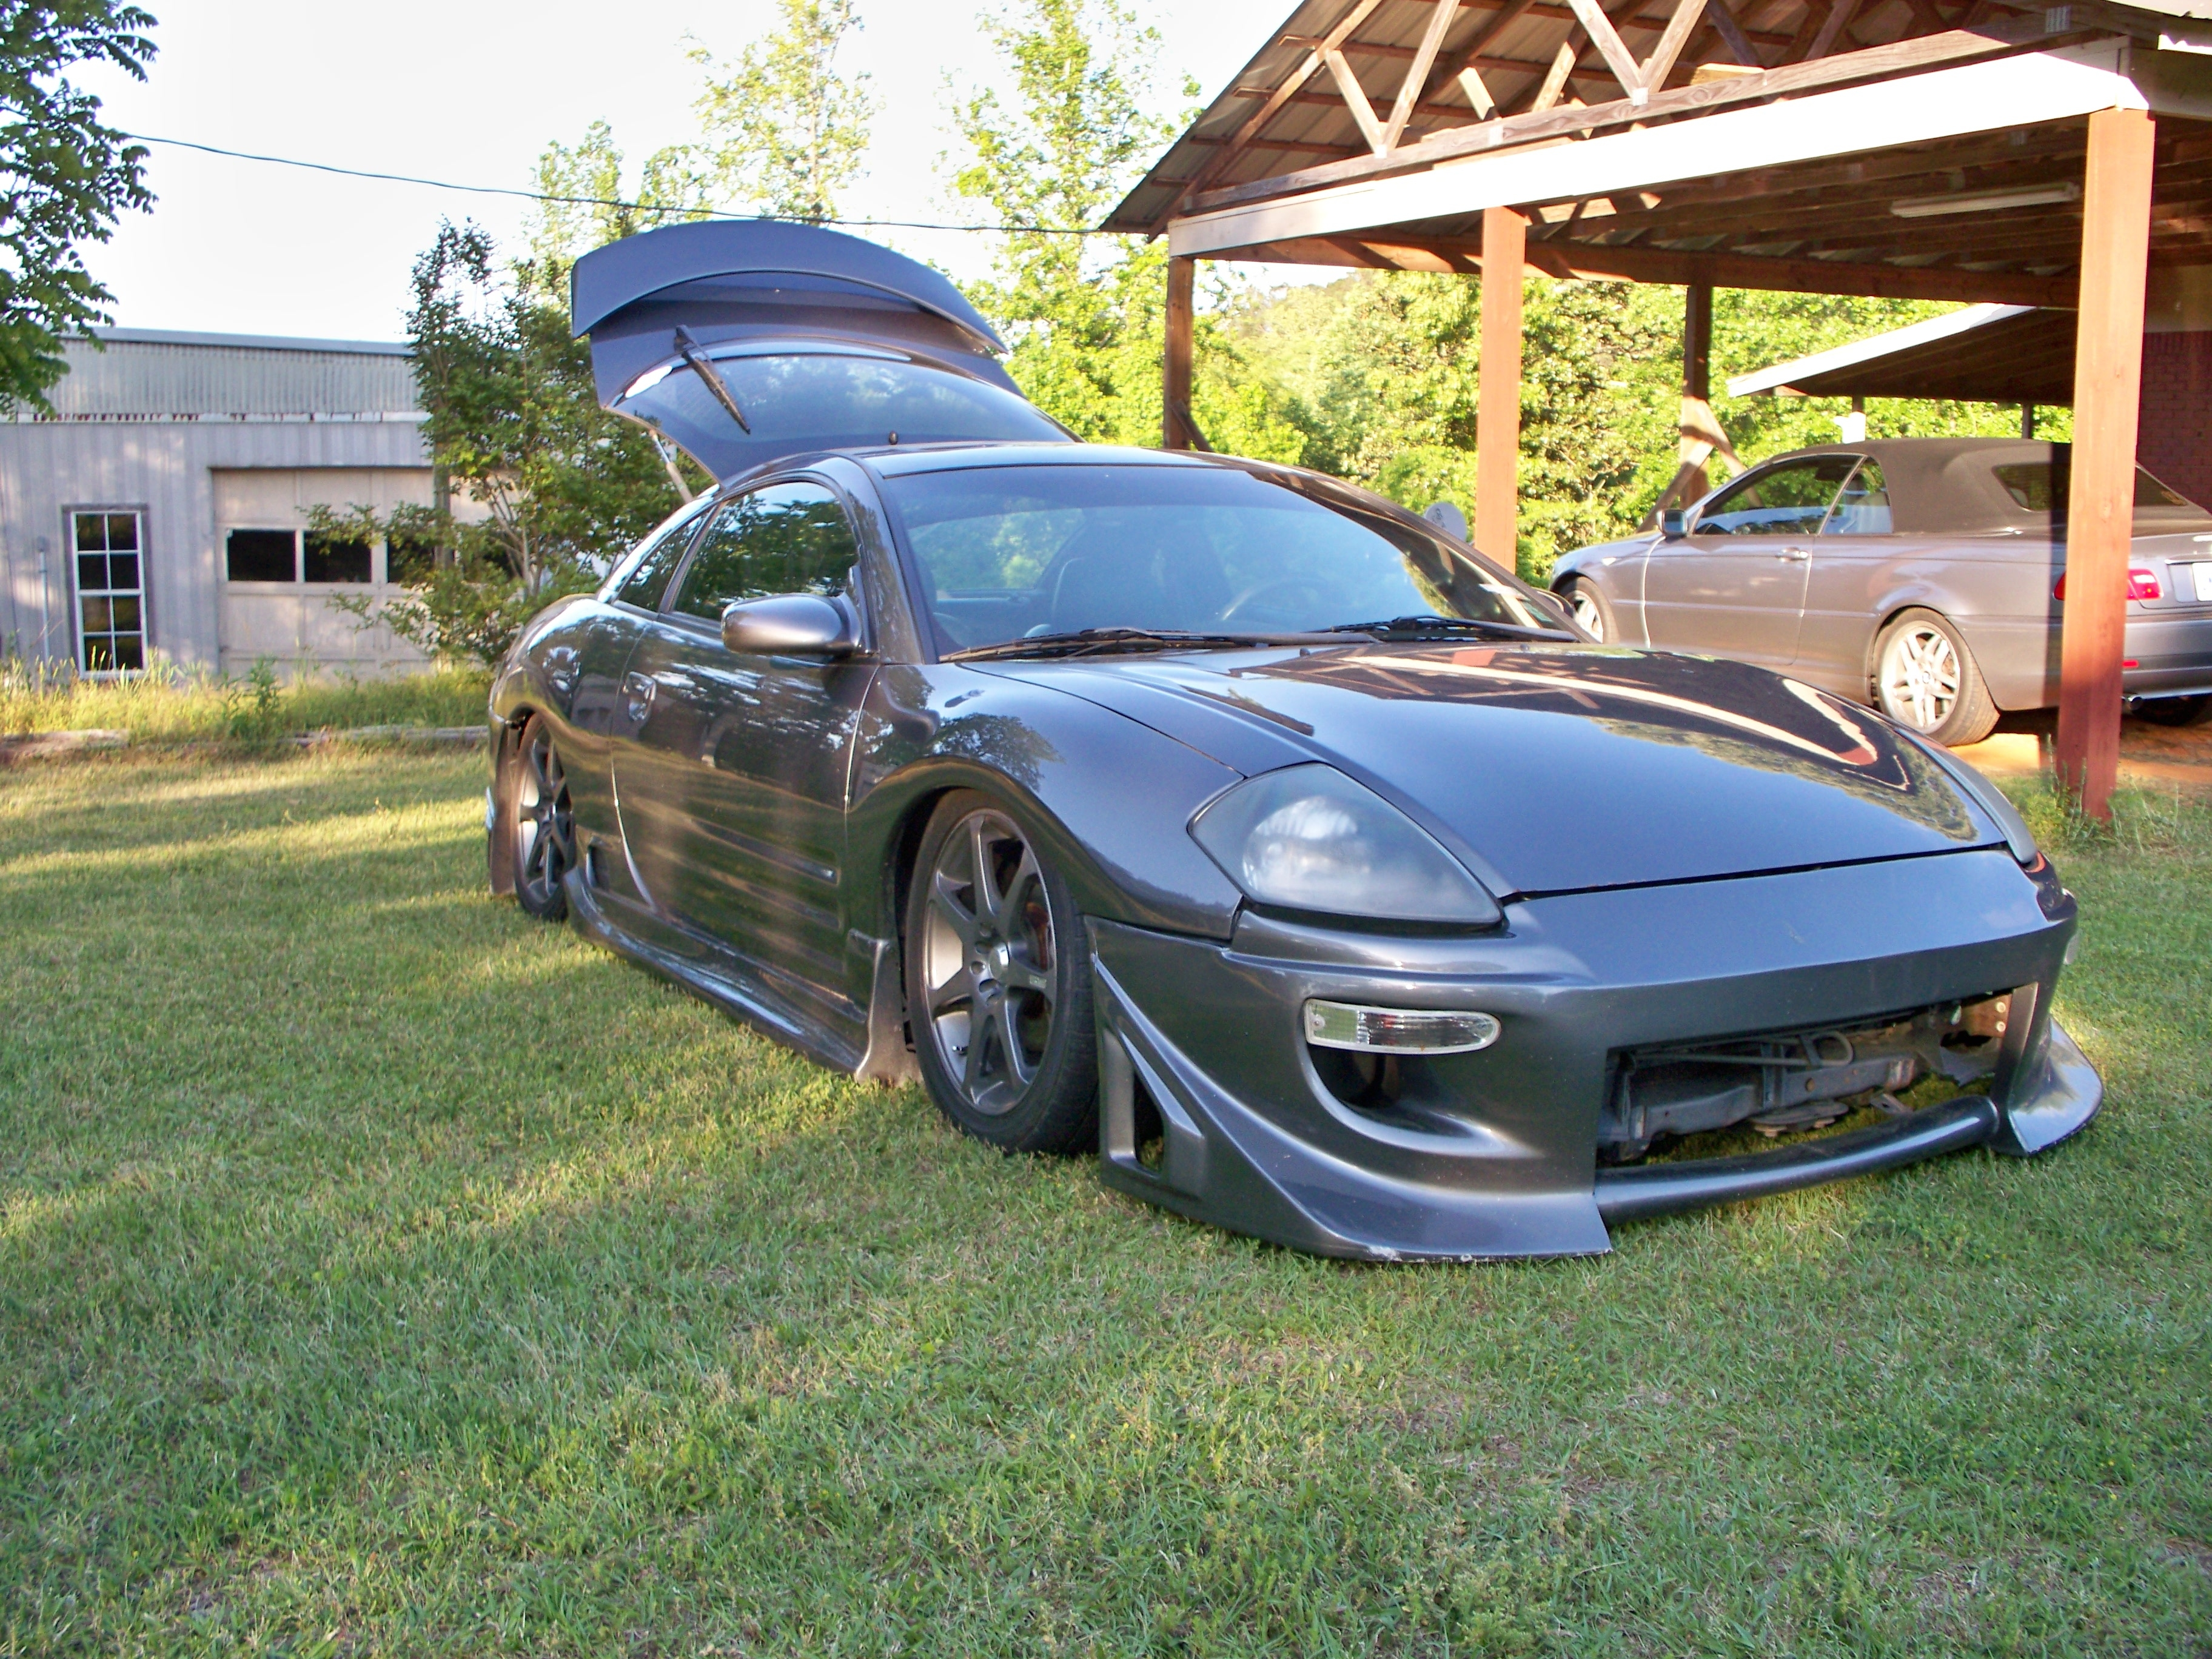 sale title green copart in auto colorado co carfinder mitsubishi salvage eclipse view online lot for left auctions on rs en springs